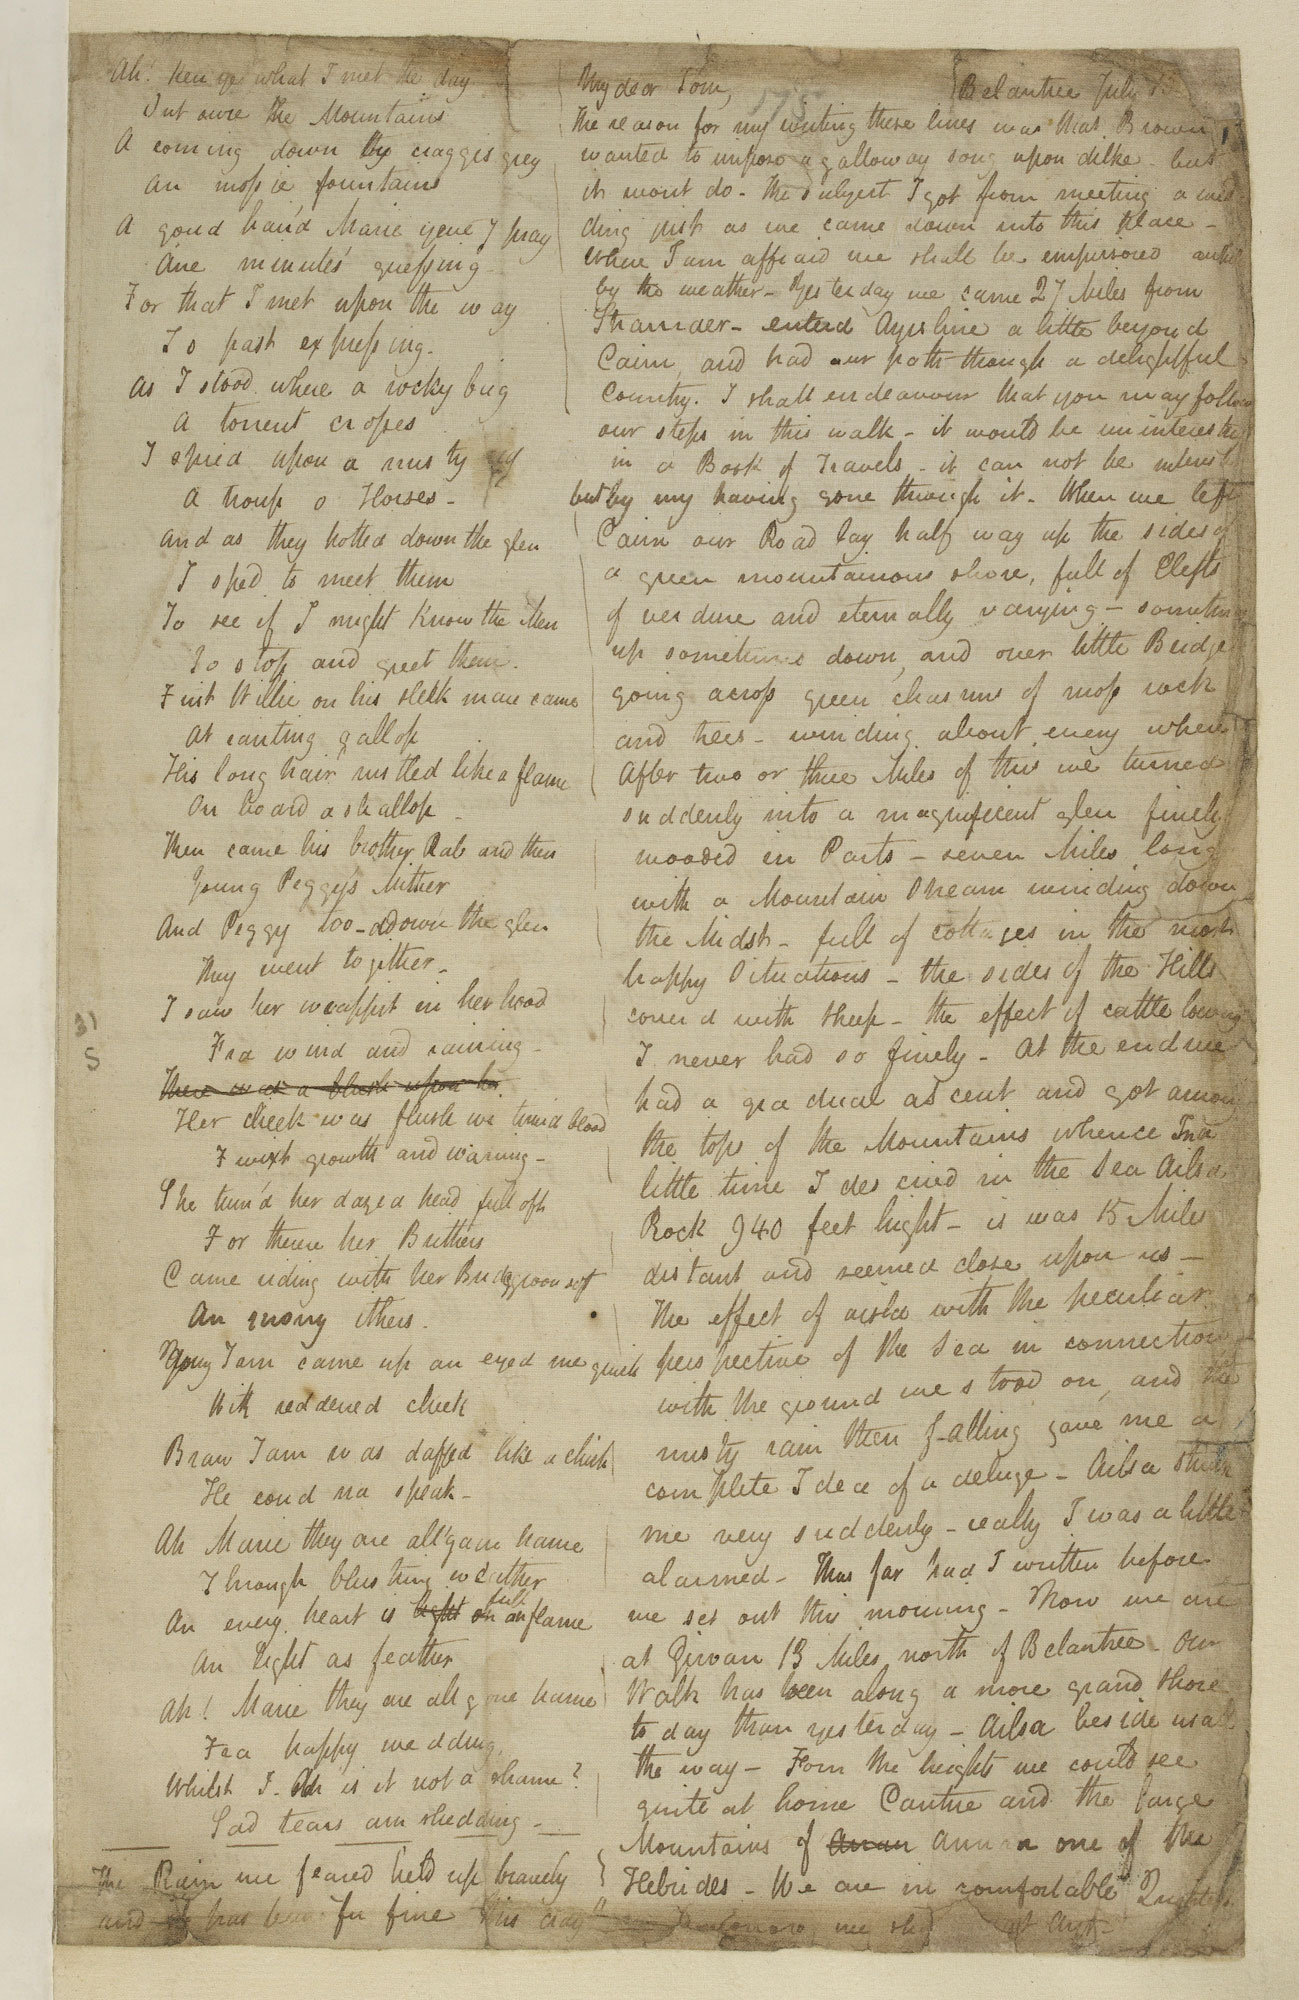 Letter from John Keats to his brother during his walking